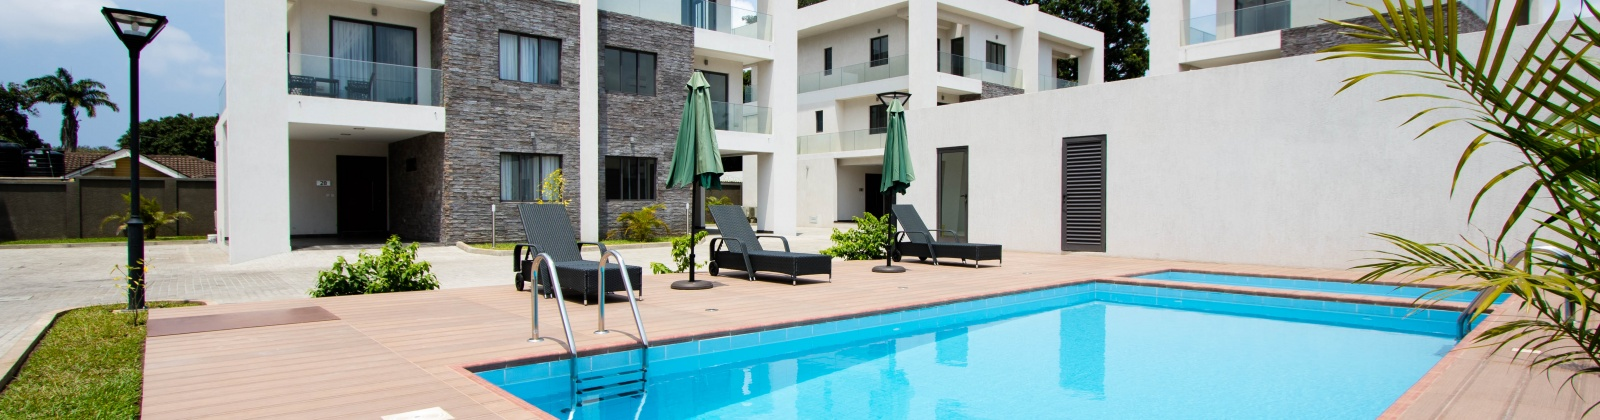 Airport Residential, Accra, Greater Accra, 4 Bedrooms Bedrooms, ,3 BathroomsBathrooms,Apartment,For Sale,Airport Residential ,1022